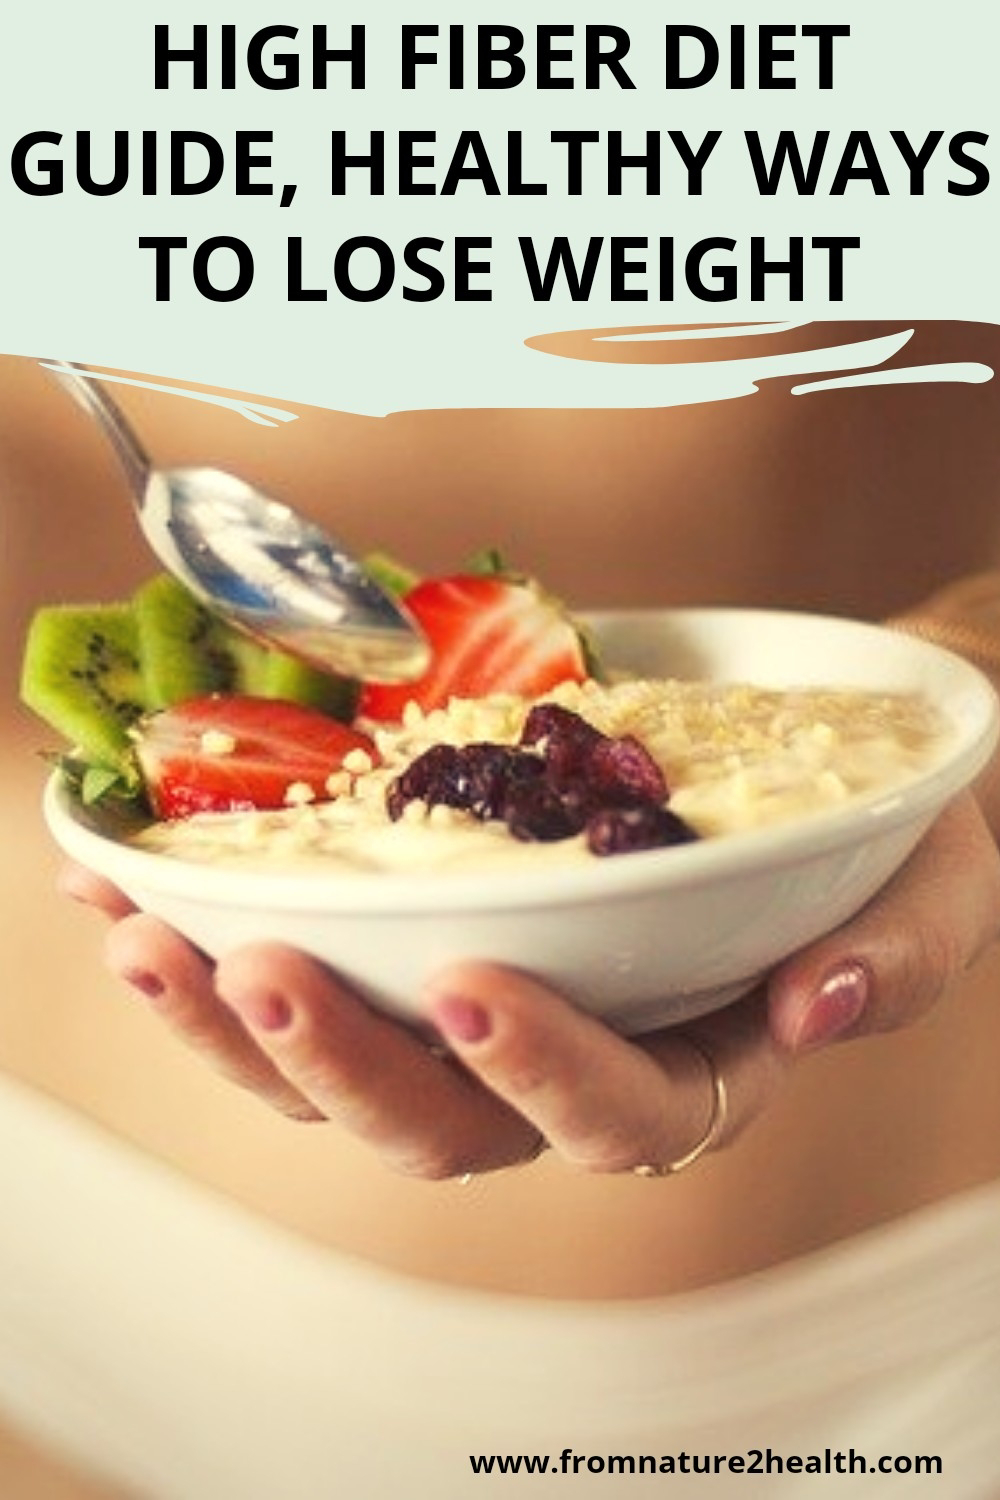 High Fiber Diet Guide, Healthy Ways to Lose Weight